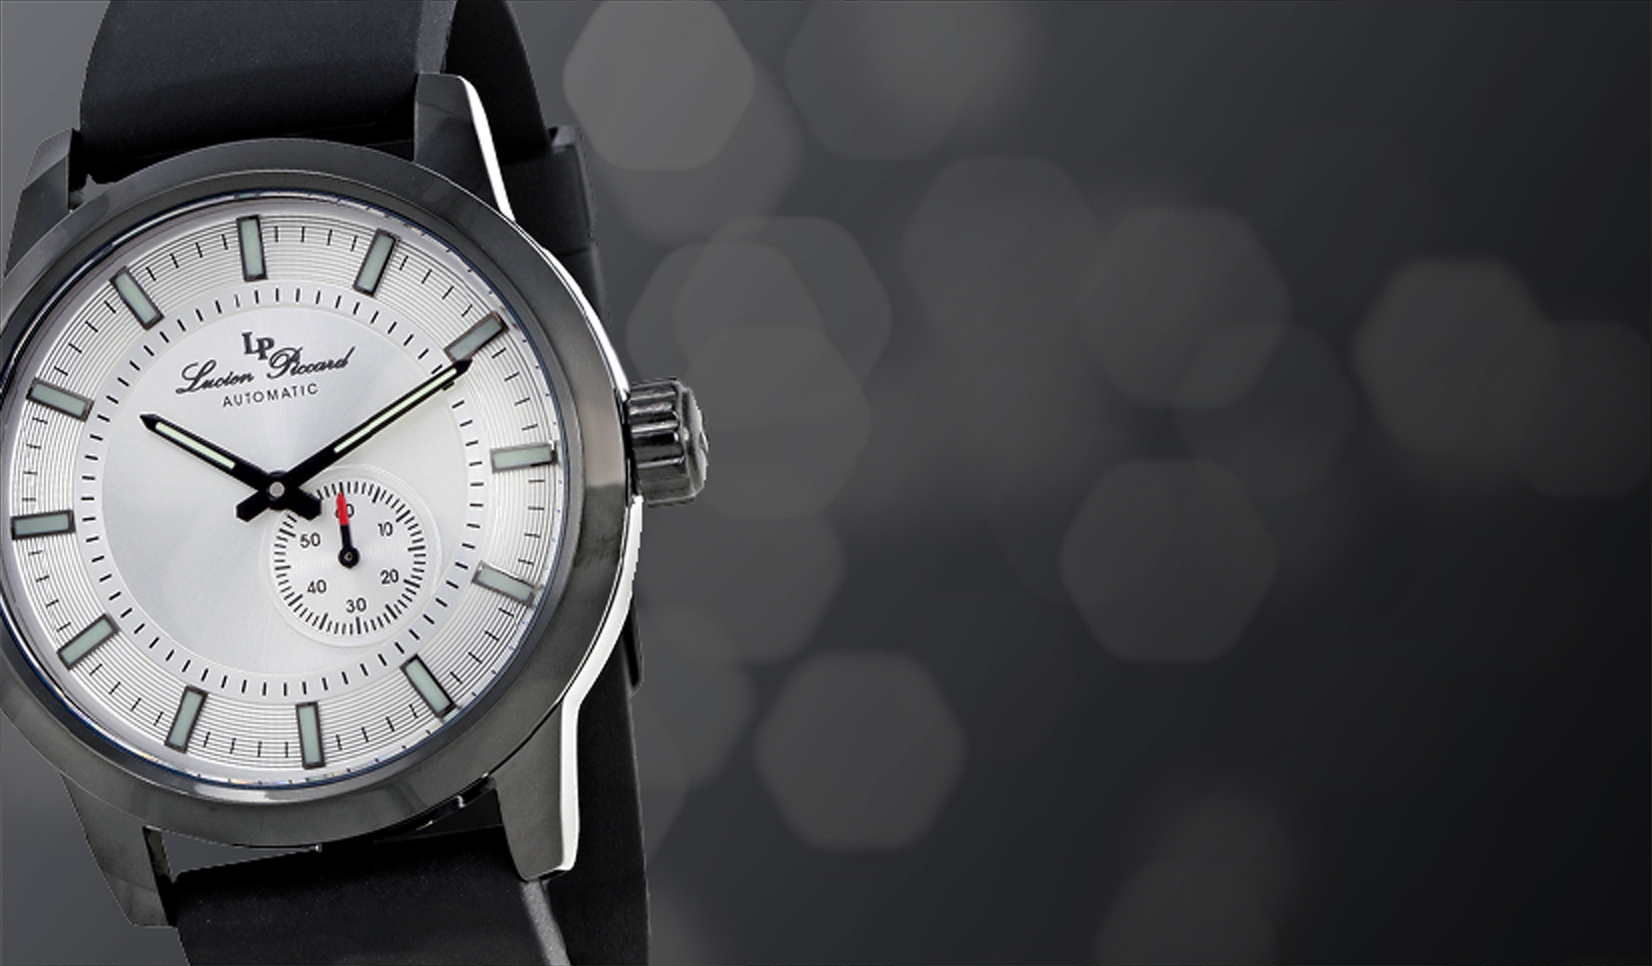 01c09e48ad4 the Network of worldofwatches.com SendsData.to